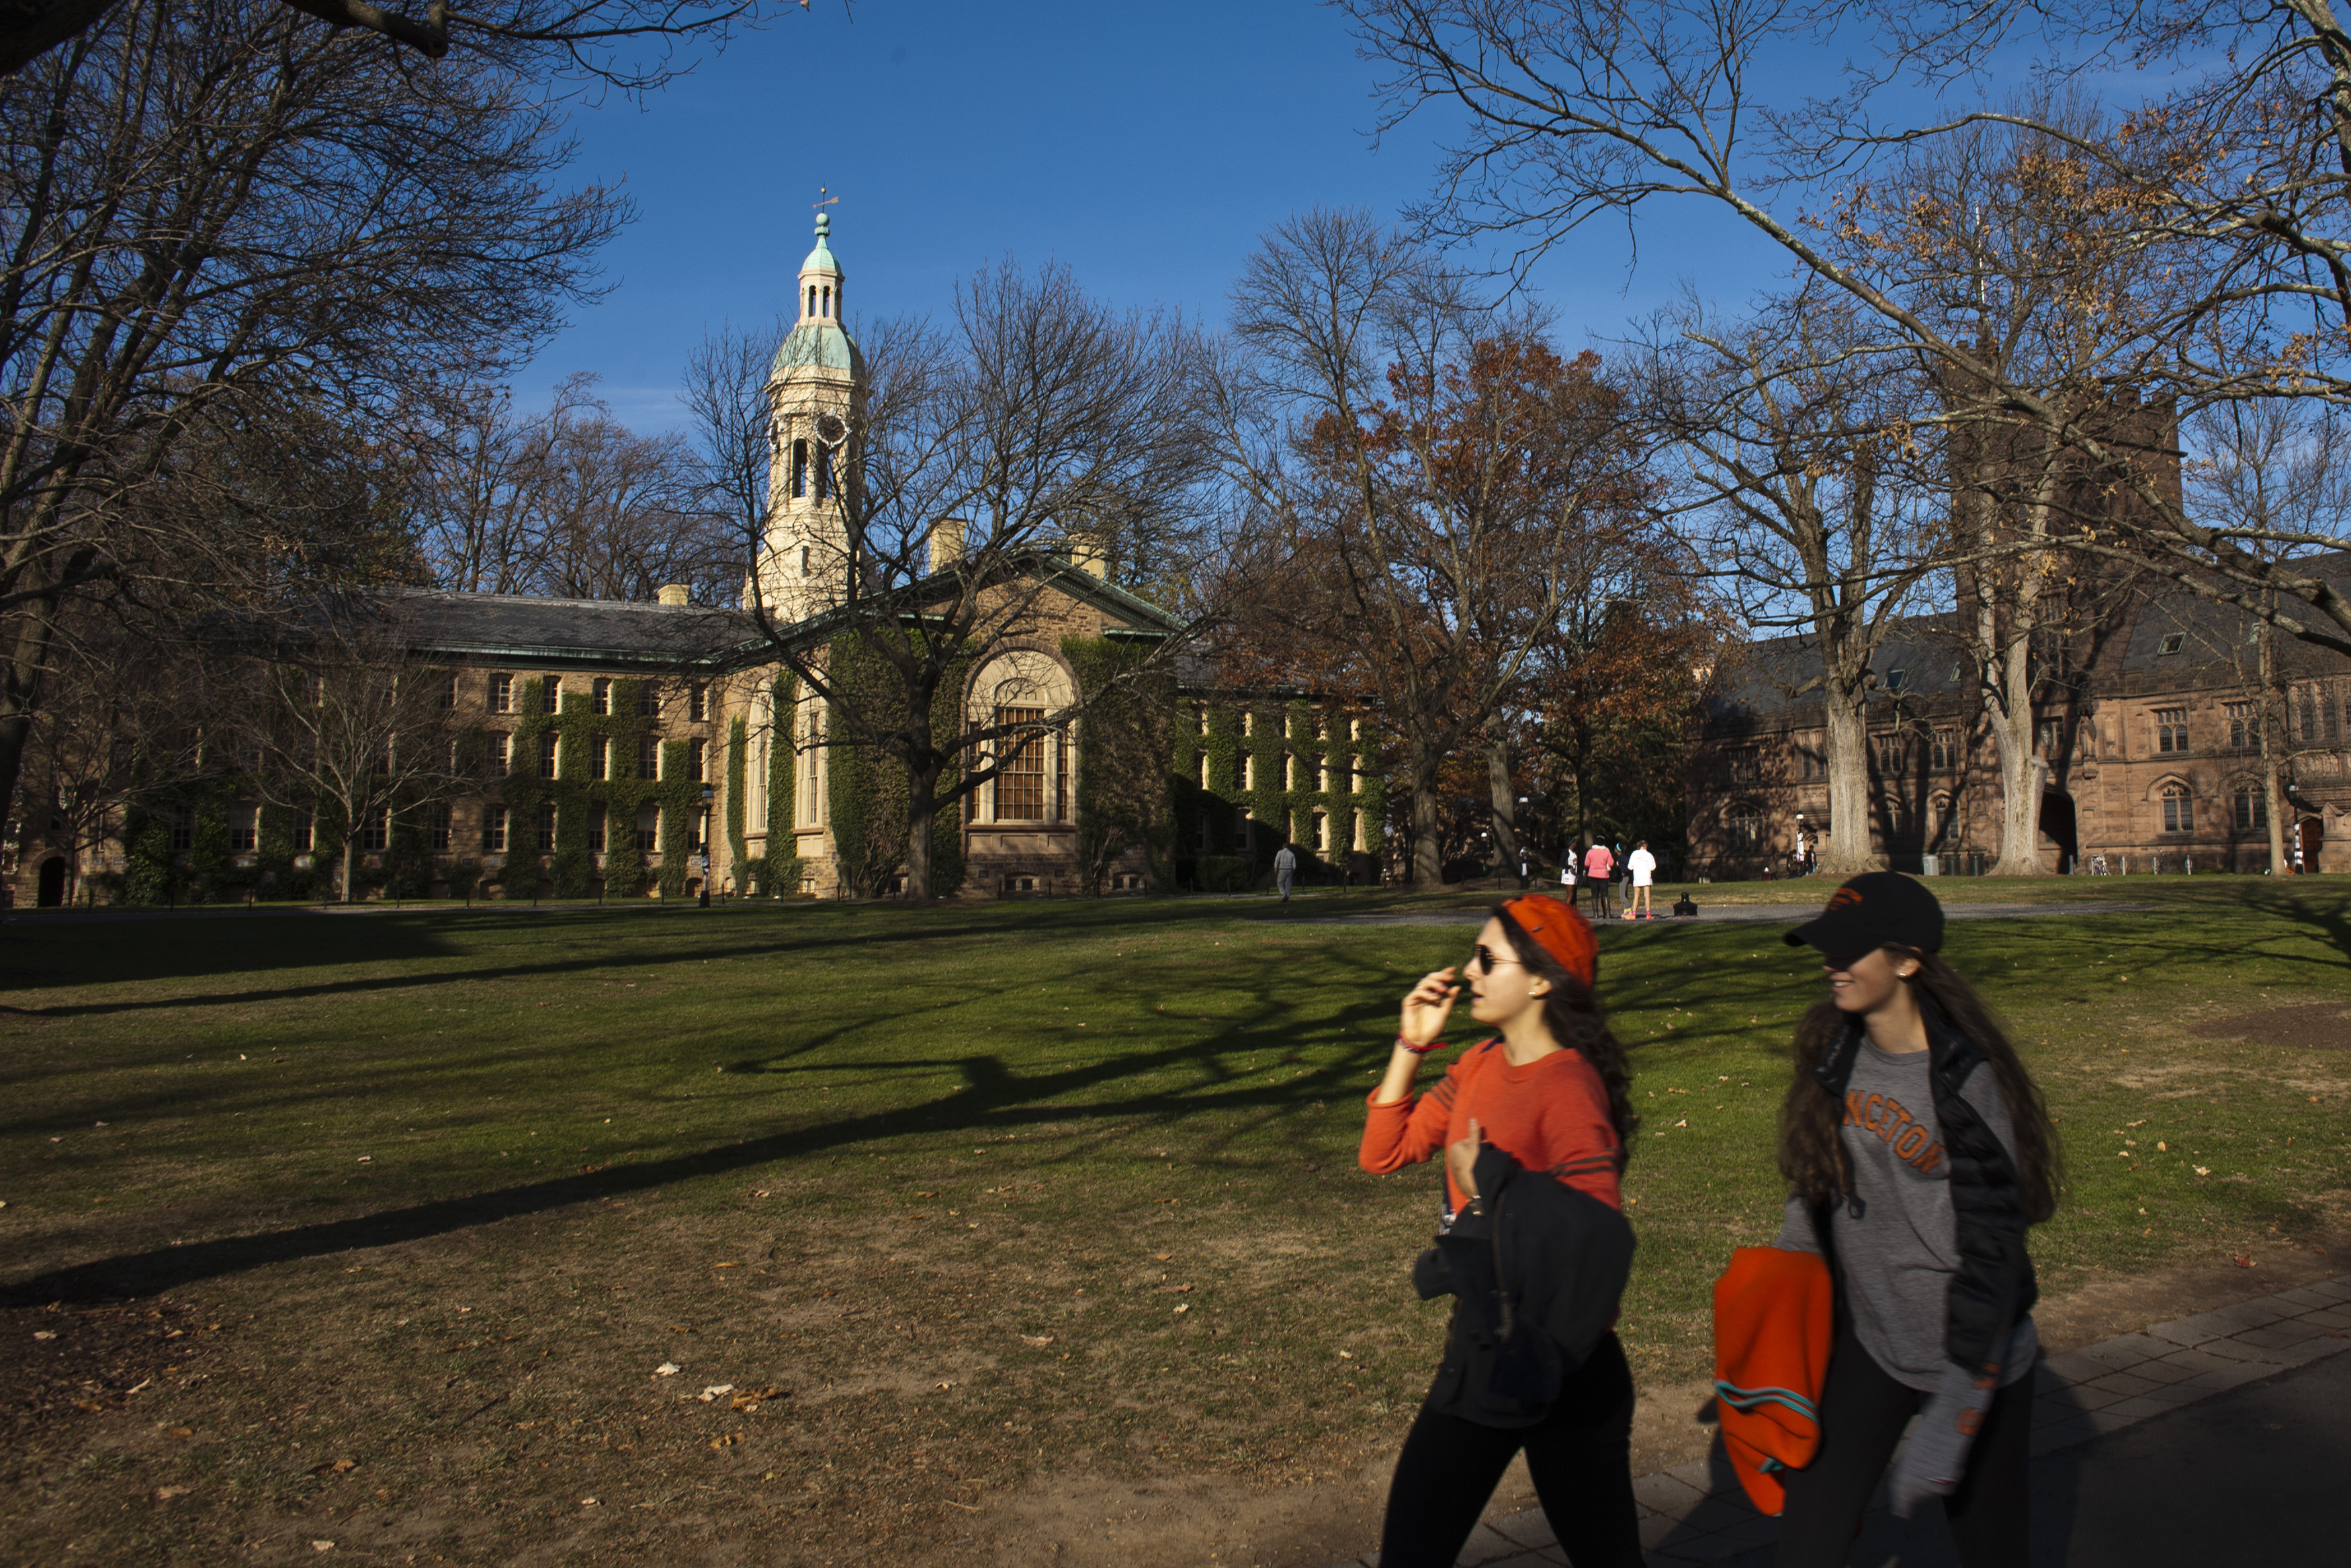 Students walk around the Princeton University campus in New Jersey, November 16, 2013. A meningitis vaccine approved for use in Europe and Australia but not in the United States can be imported to try to stop an outbreak of the disease at Princeton University in New Jersey, federal health officials said. The Food and Drug Administration agreed this week to the importation of the vaccine, Bexsero, for potential use on the Ivy League campus, Barbara Reynolds, a spokeswoman for the Centers for Disease Control and Prevention, said on Saturday. REUTERS/Eduardo Munoz (UNITED STATES - Tags: SOCIETY EDUCATION HEALTH)